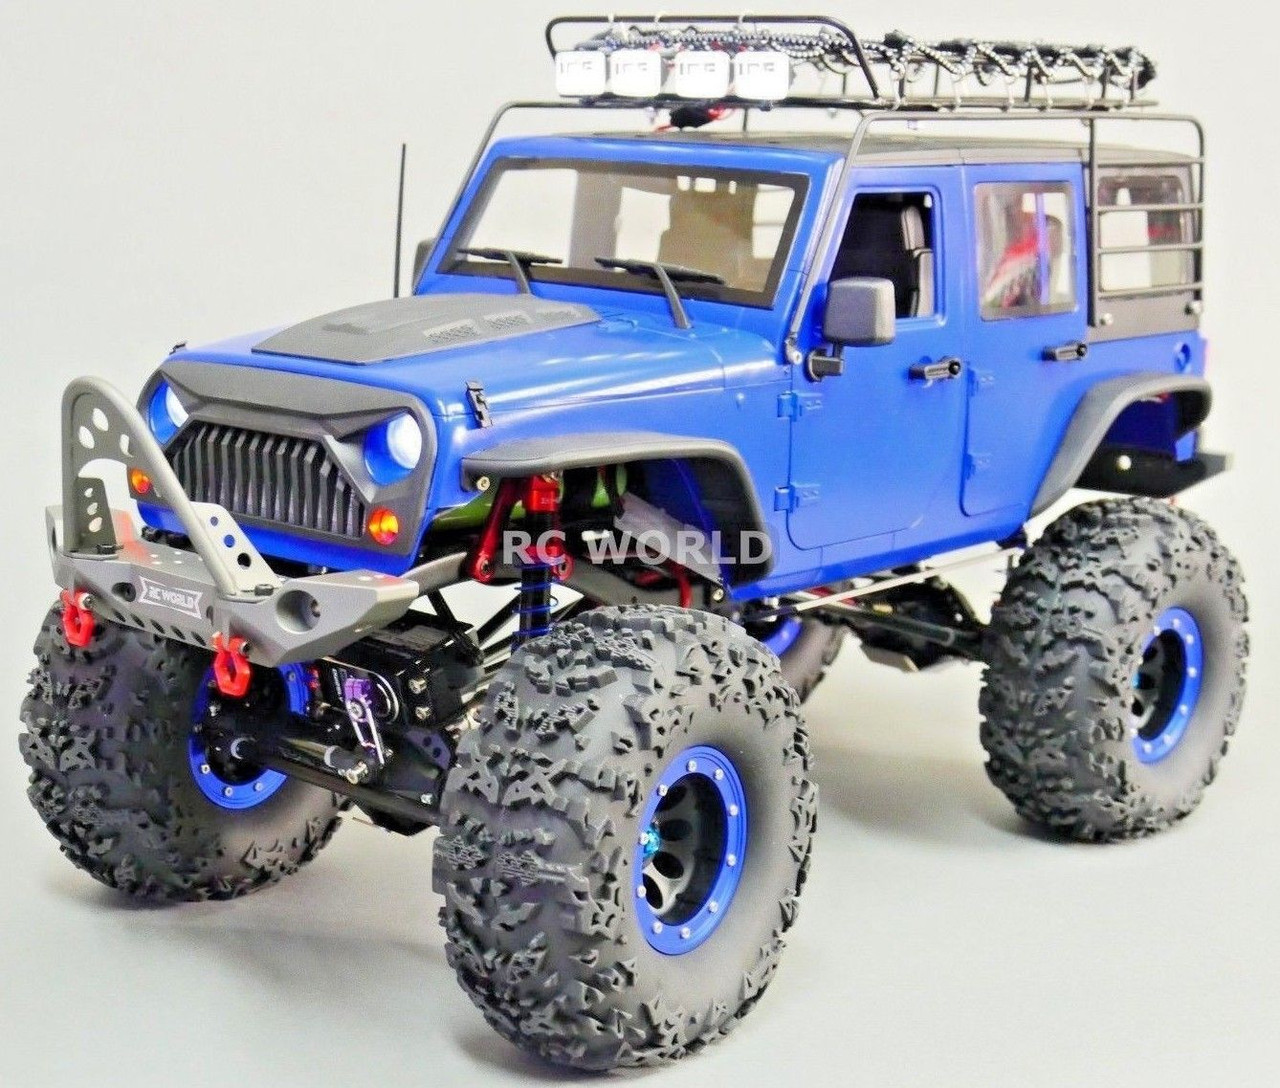 Custom Jeep Wrangler >> Custom Rc Jeep Wrangler 2 2 Rock Crawler 8 4v Single Speed Roof Rack Rtr